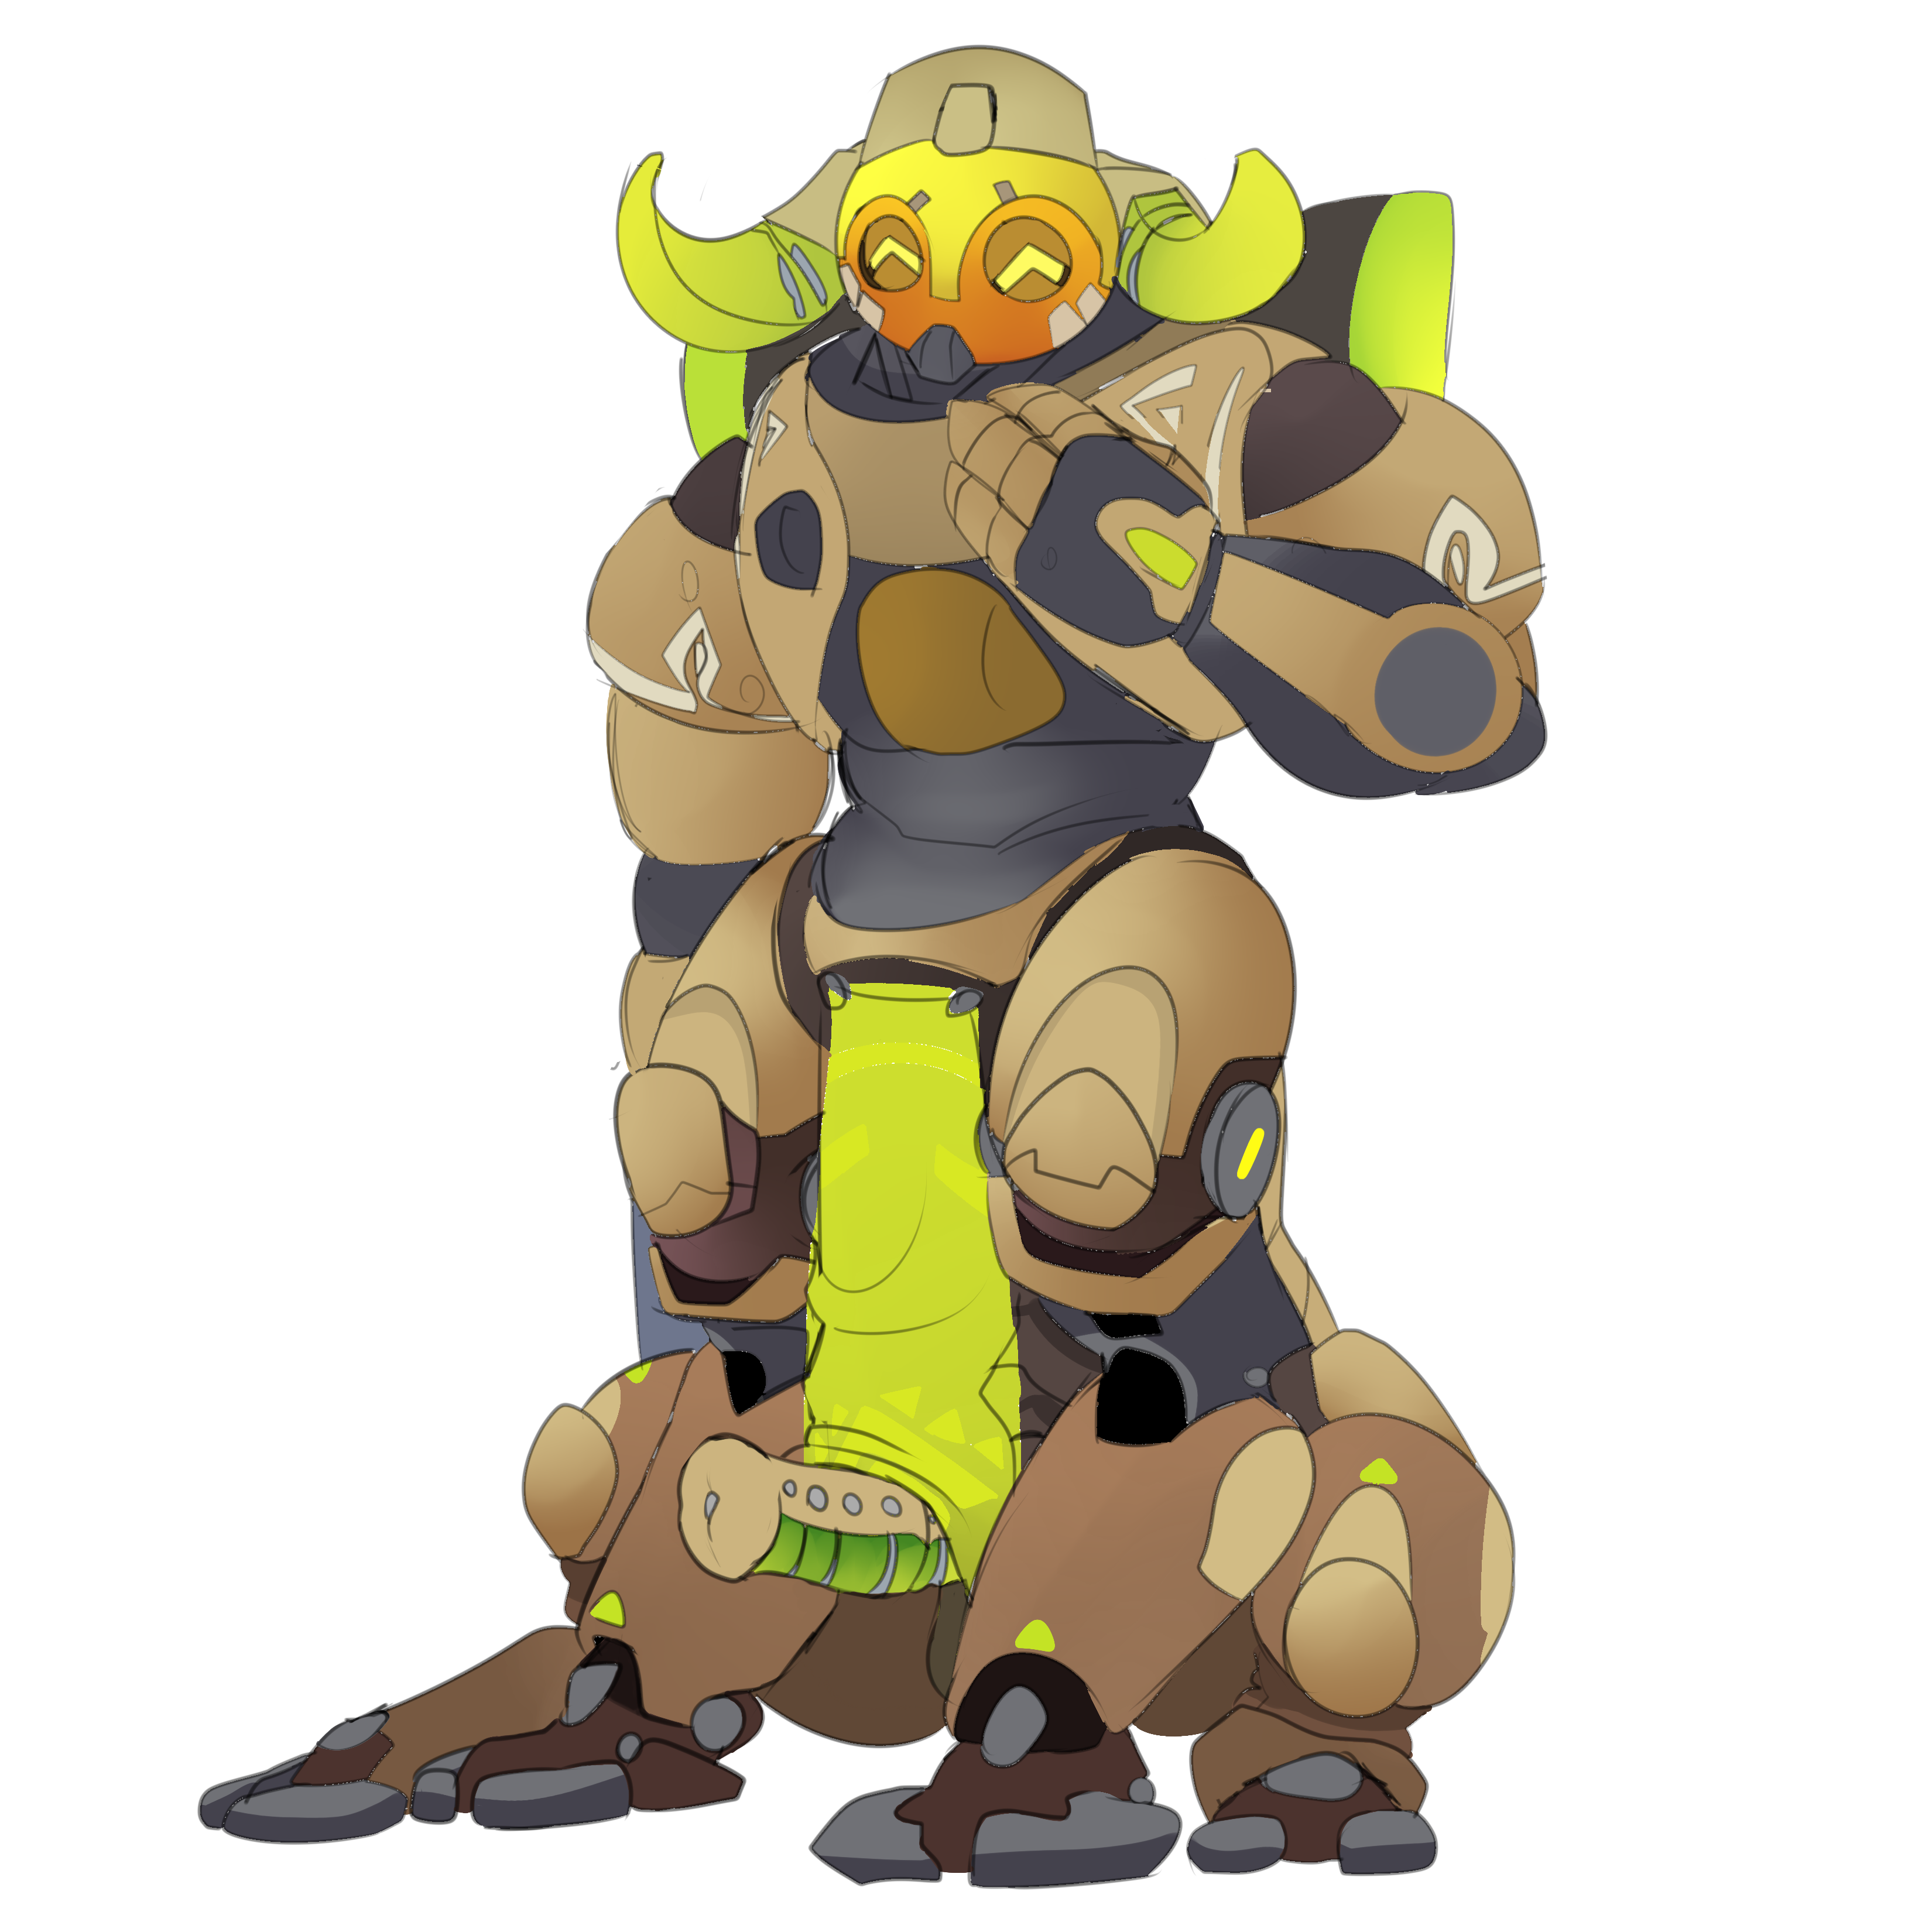 2494159 - Orisa Overlook